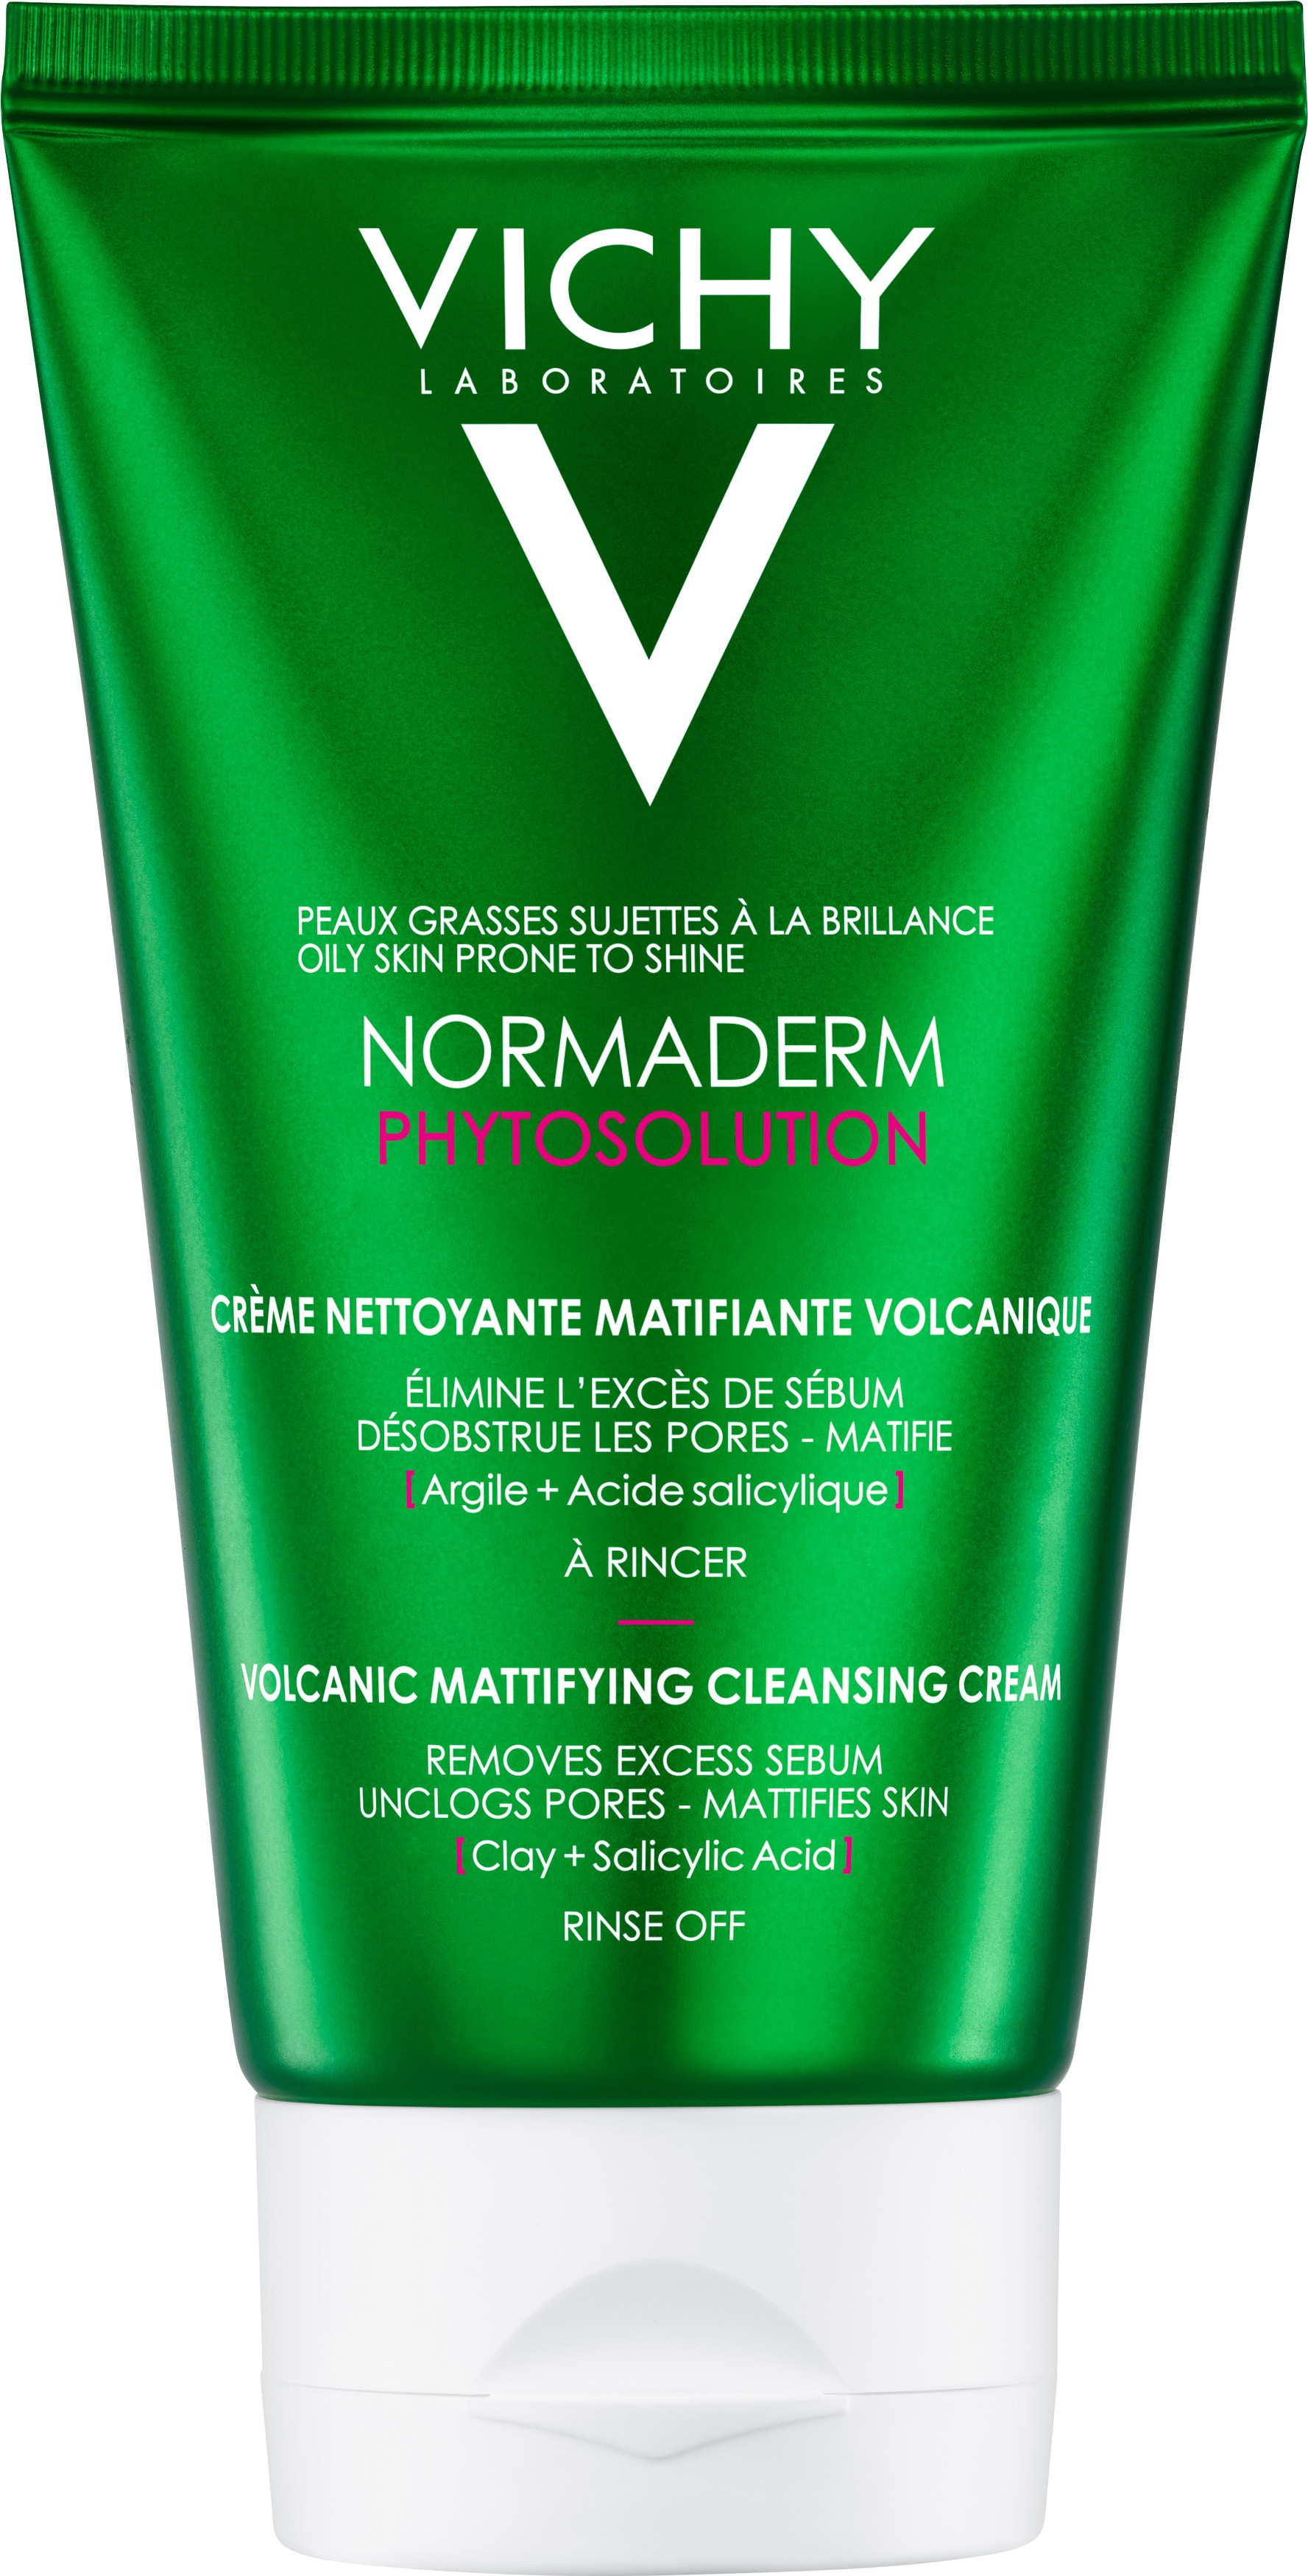 Vichy Normaderm Phytosolution Volcanic Mattifying Cleansing Cream